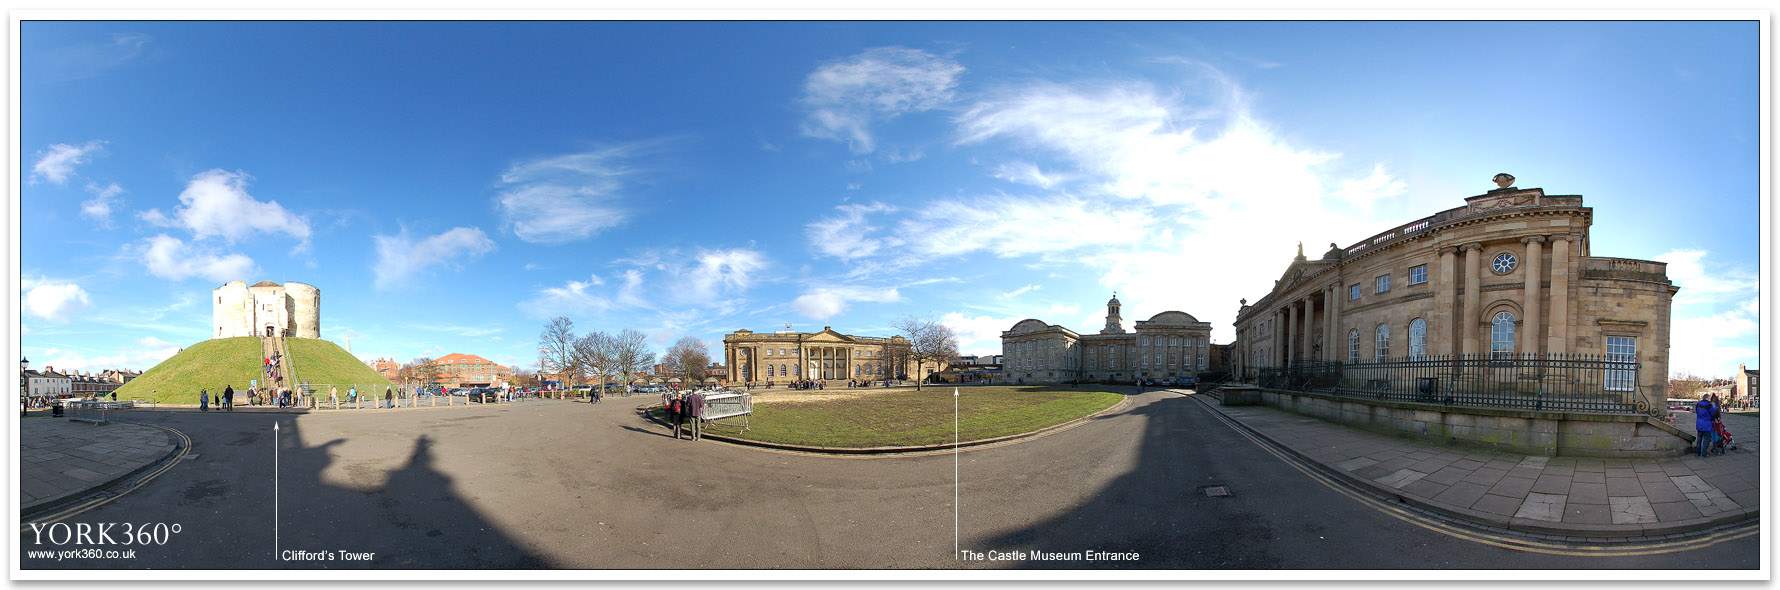 Panoramic Photo Of York Castle Area The Eye Of York